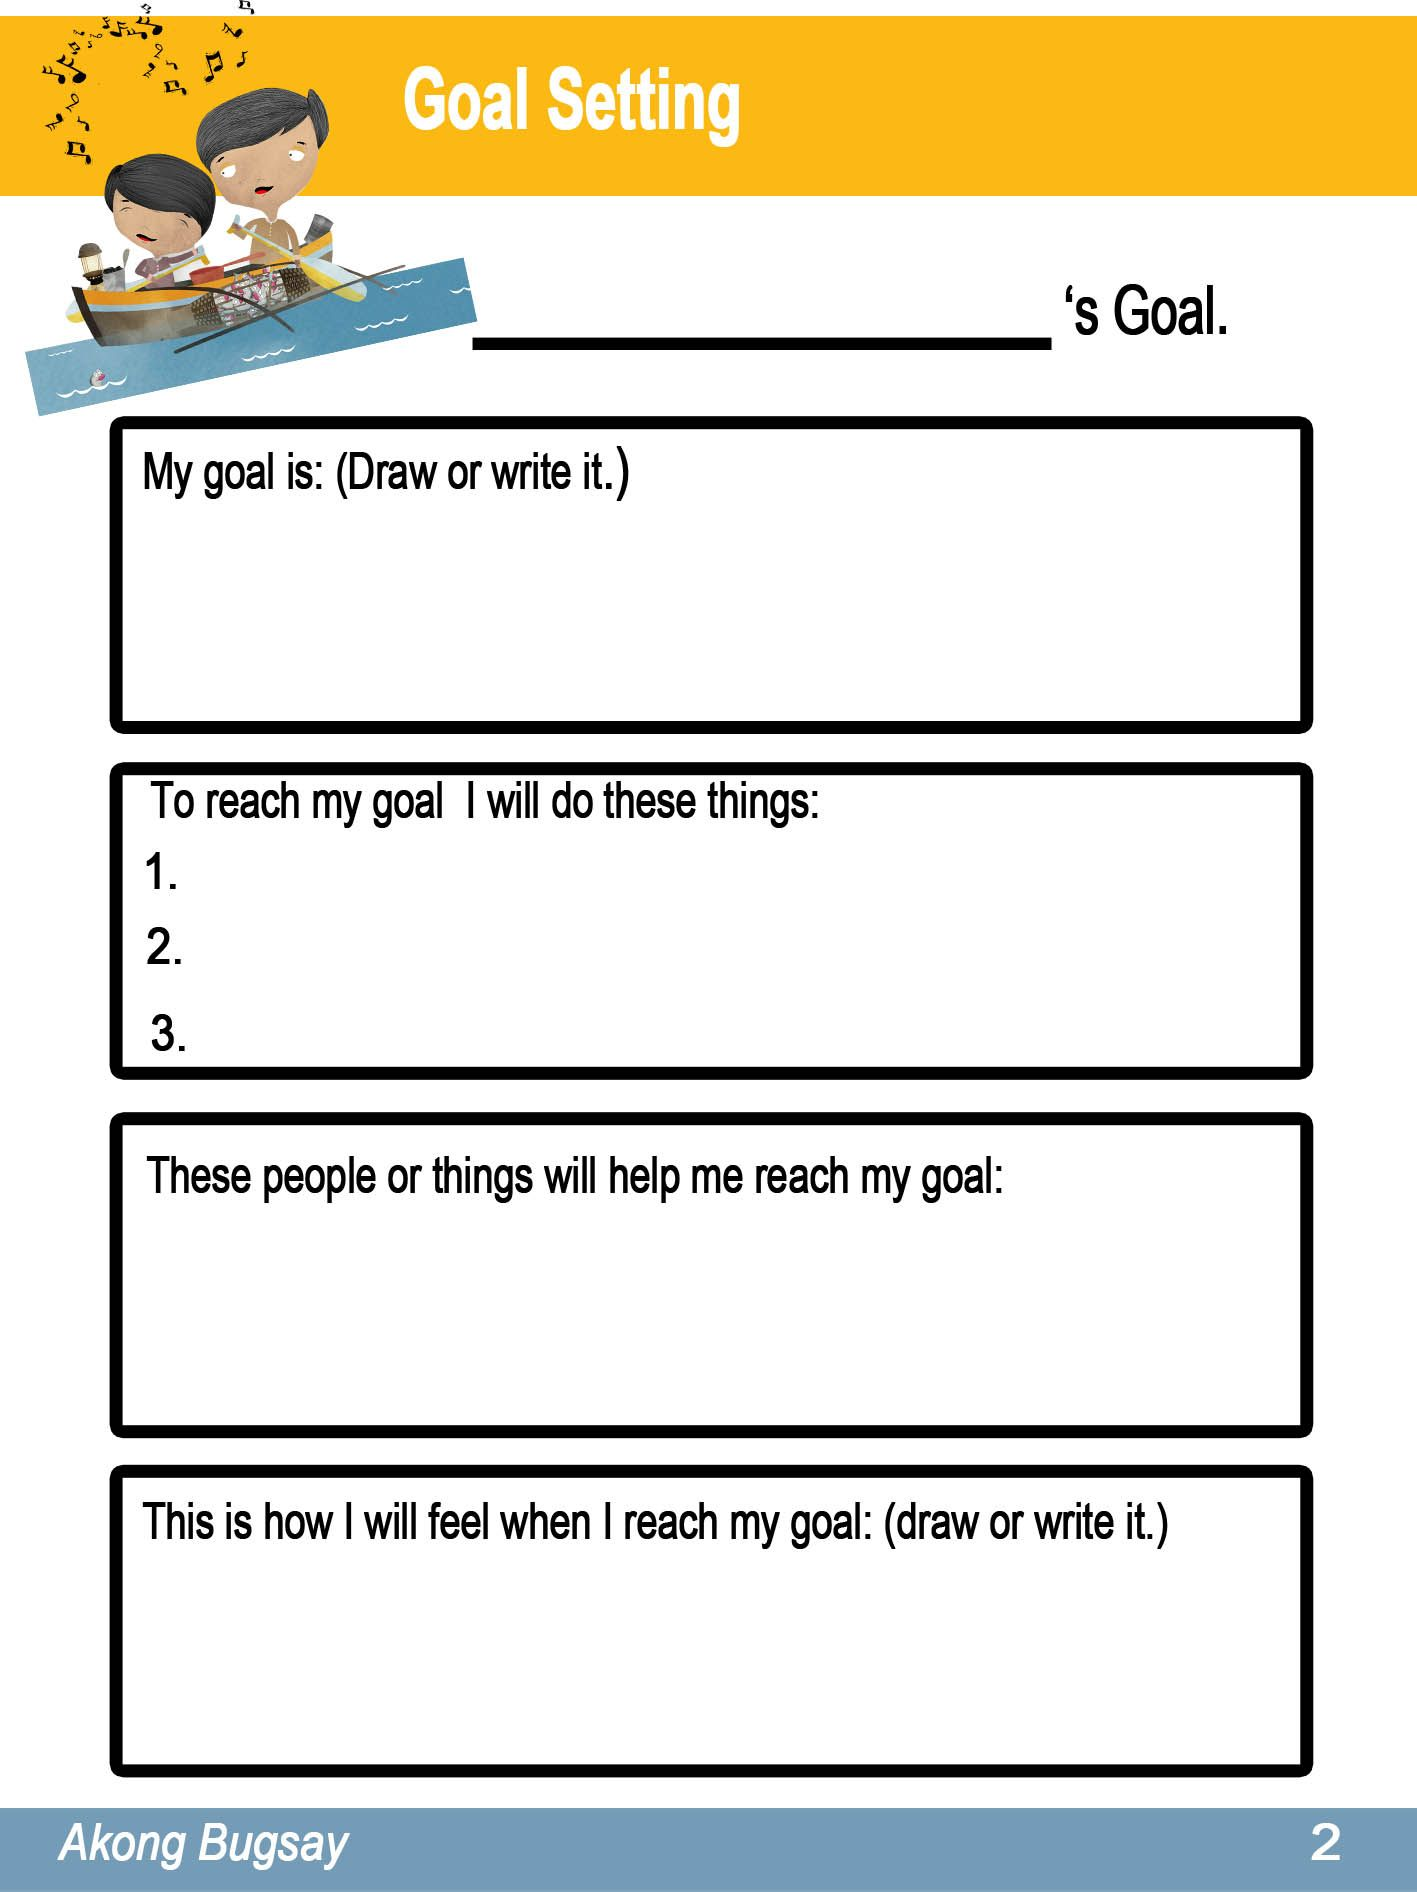 Goalsetting Copy 1 417 1 892 Pixels With Images